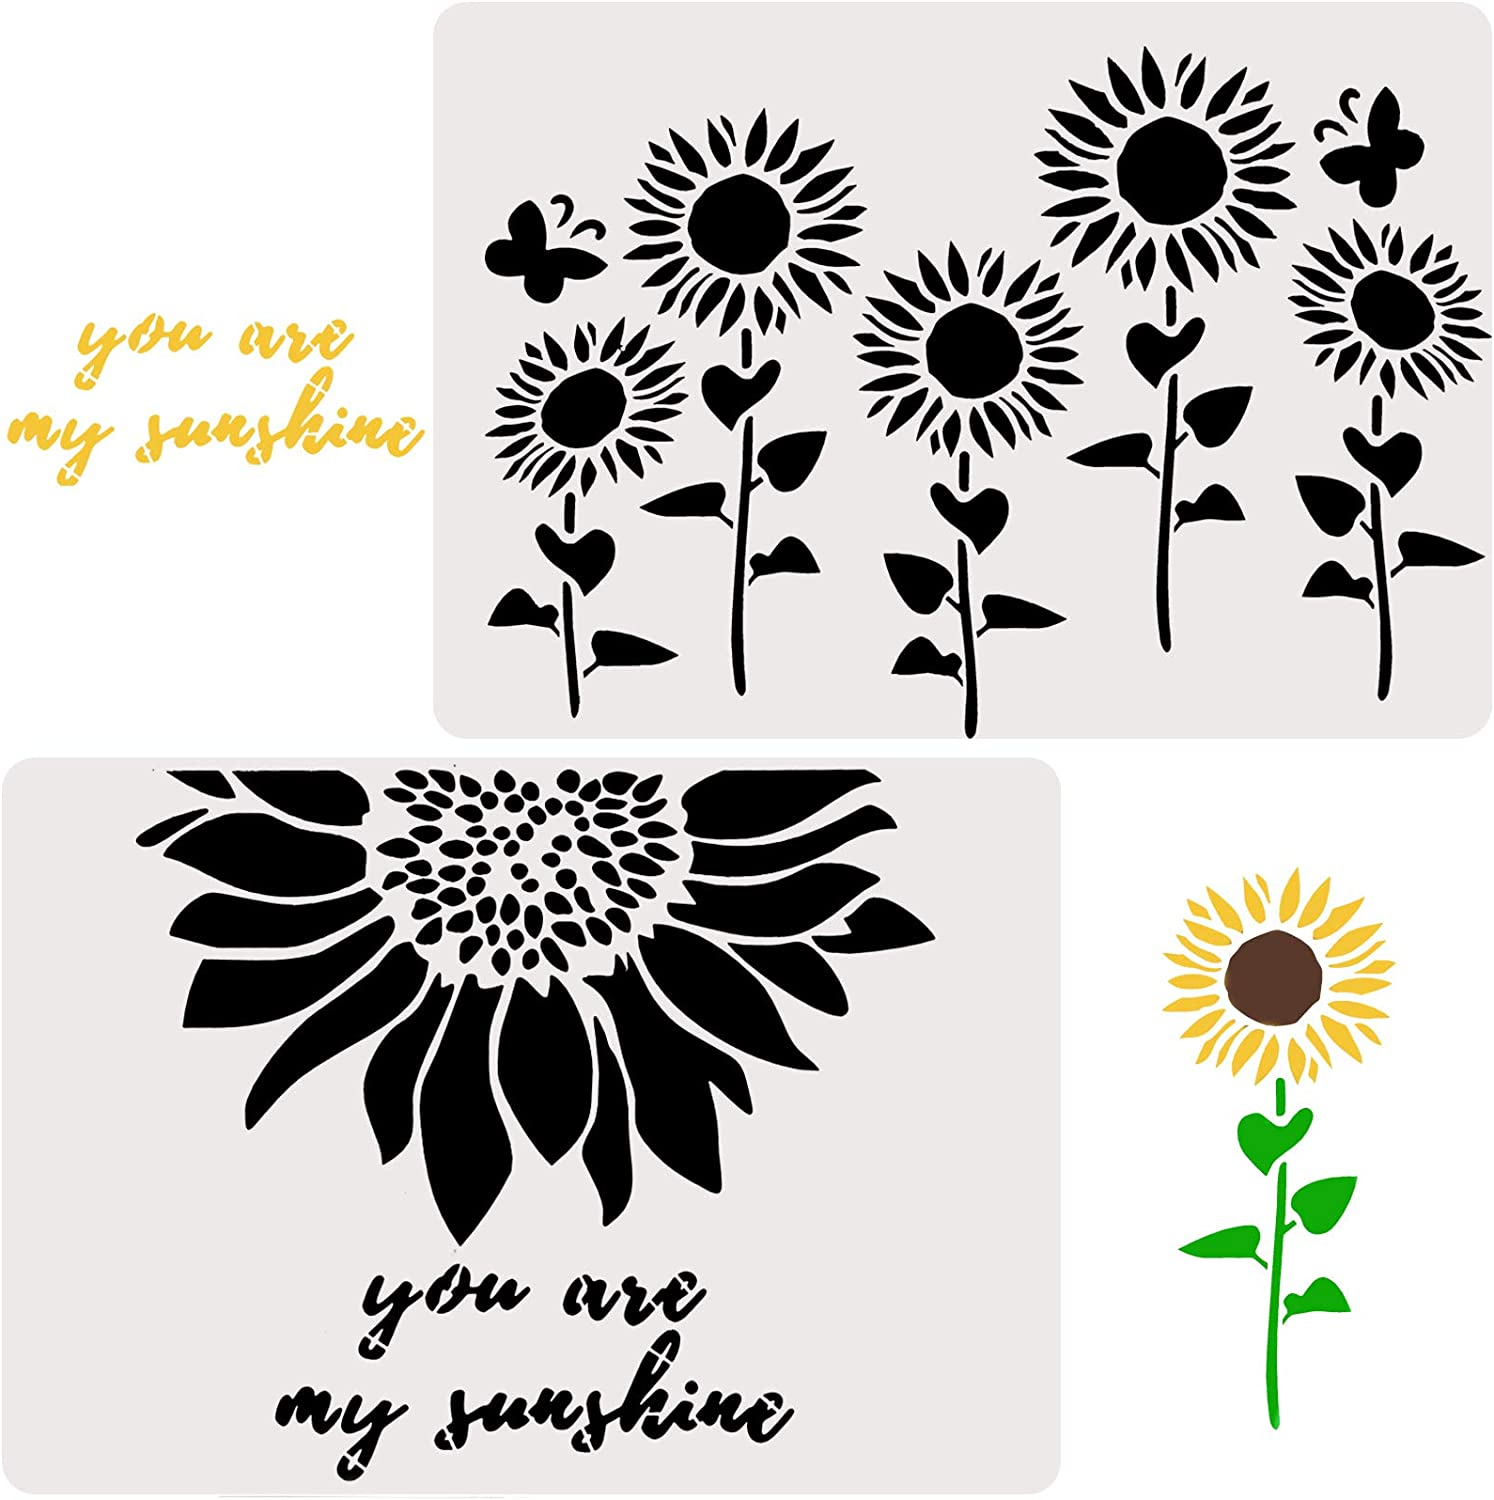 2 Pieces Sunflower Stencils Reusable Stenciling Templates You are My Sunshine Stencil Plastic Inspirational Word Stencils Joyful Sunflower Template for Painting on Wood Wall, 11.42 x 8.26 Inch